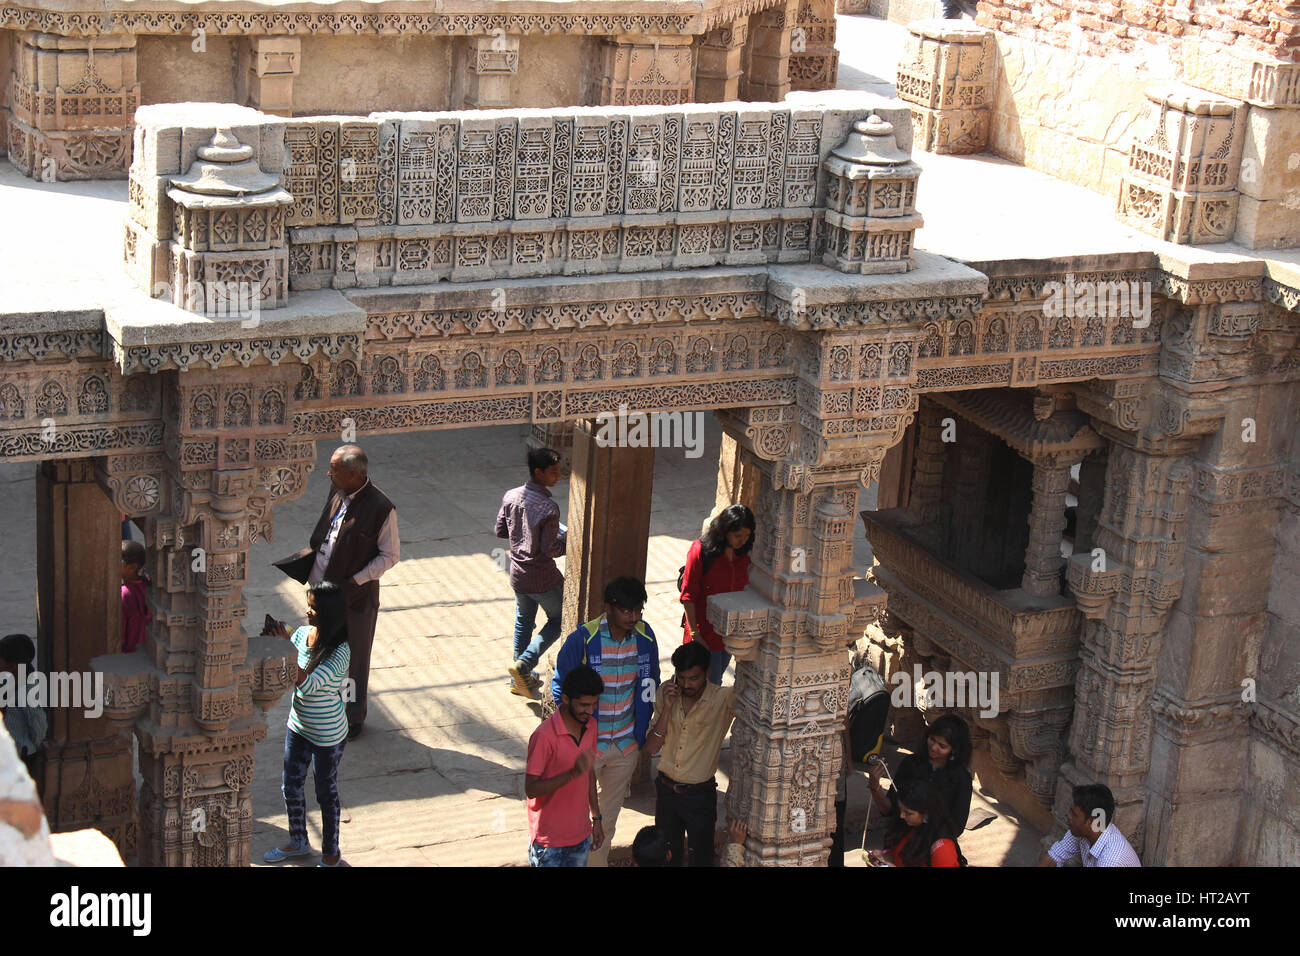 View from the top, tourist exploring the intricate carvings at Adalaj step well, Ahmedabad, Gujarat, India - Stock Image